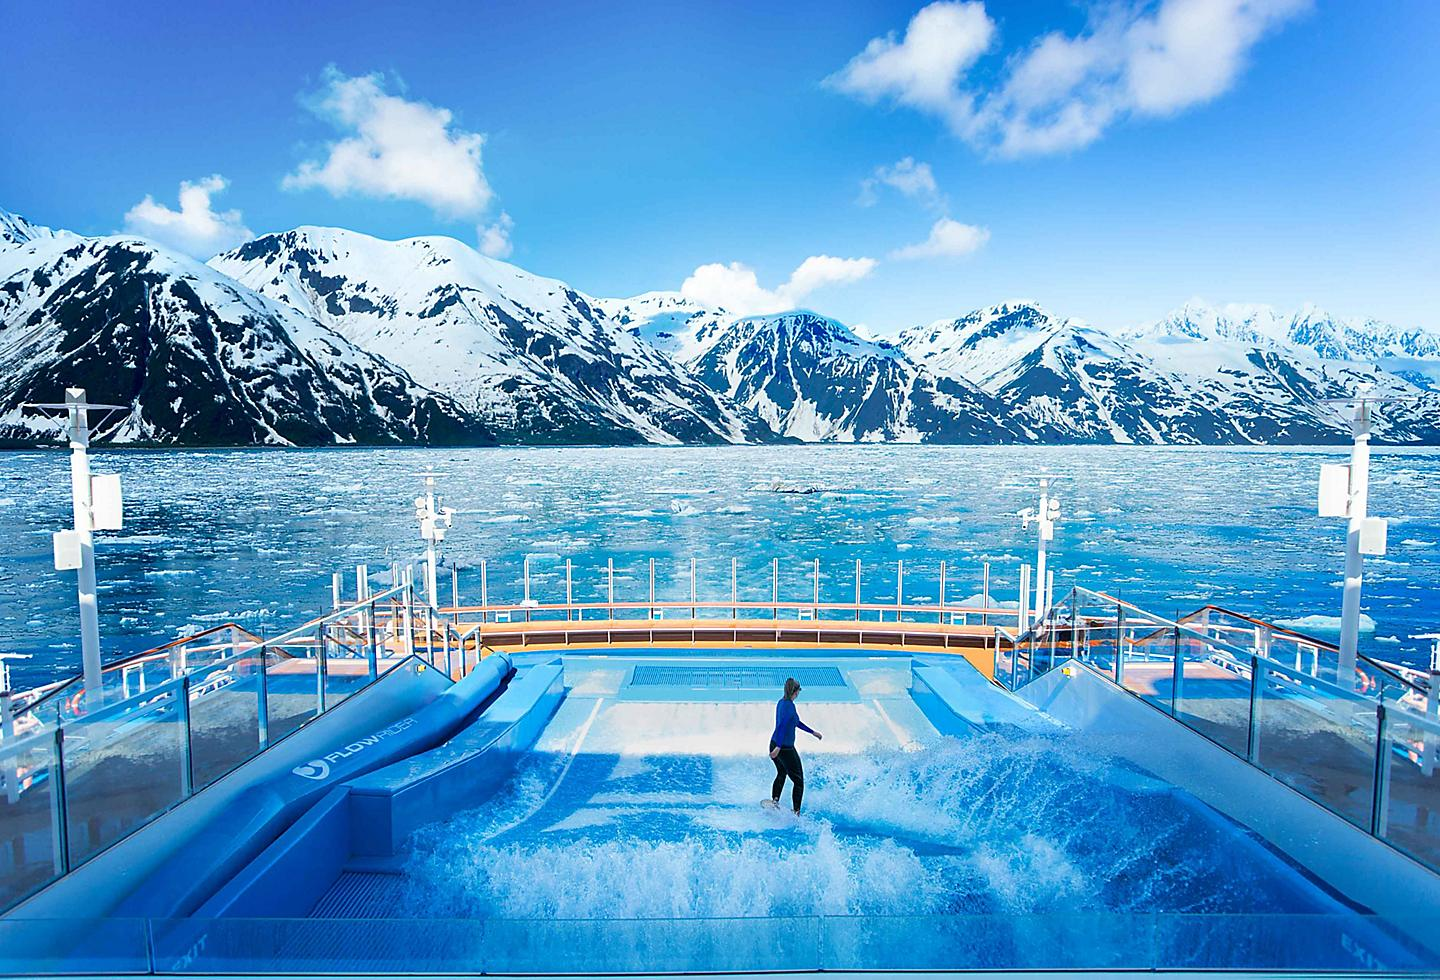 Stunning Glaciar Views from FlowRider on Ovation of the Seas Cruise Ship